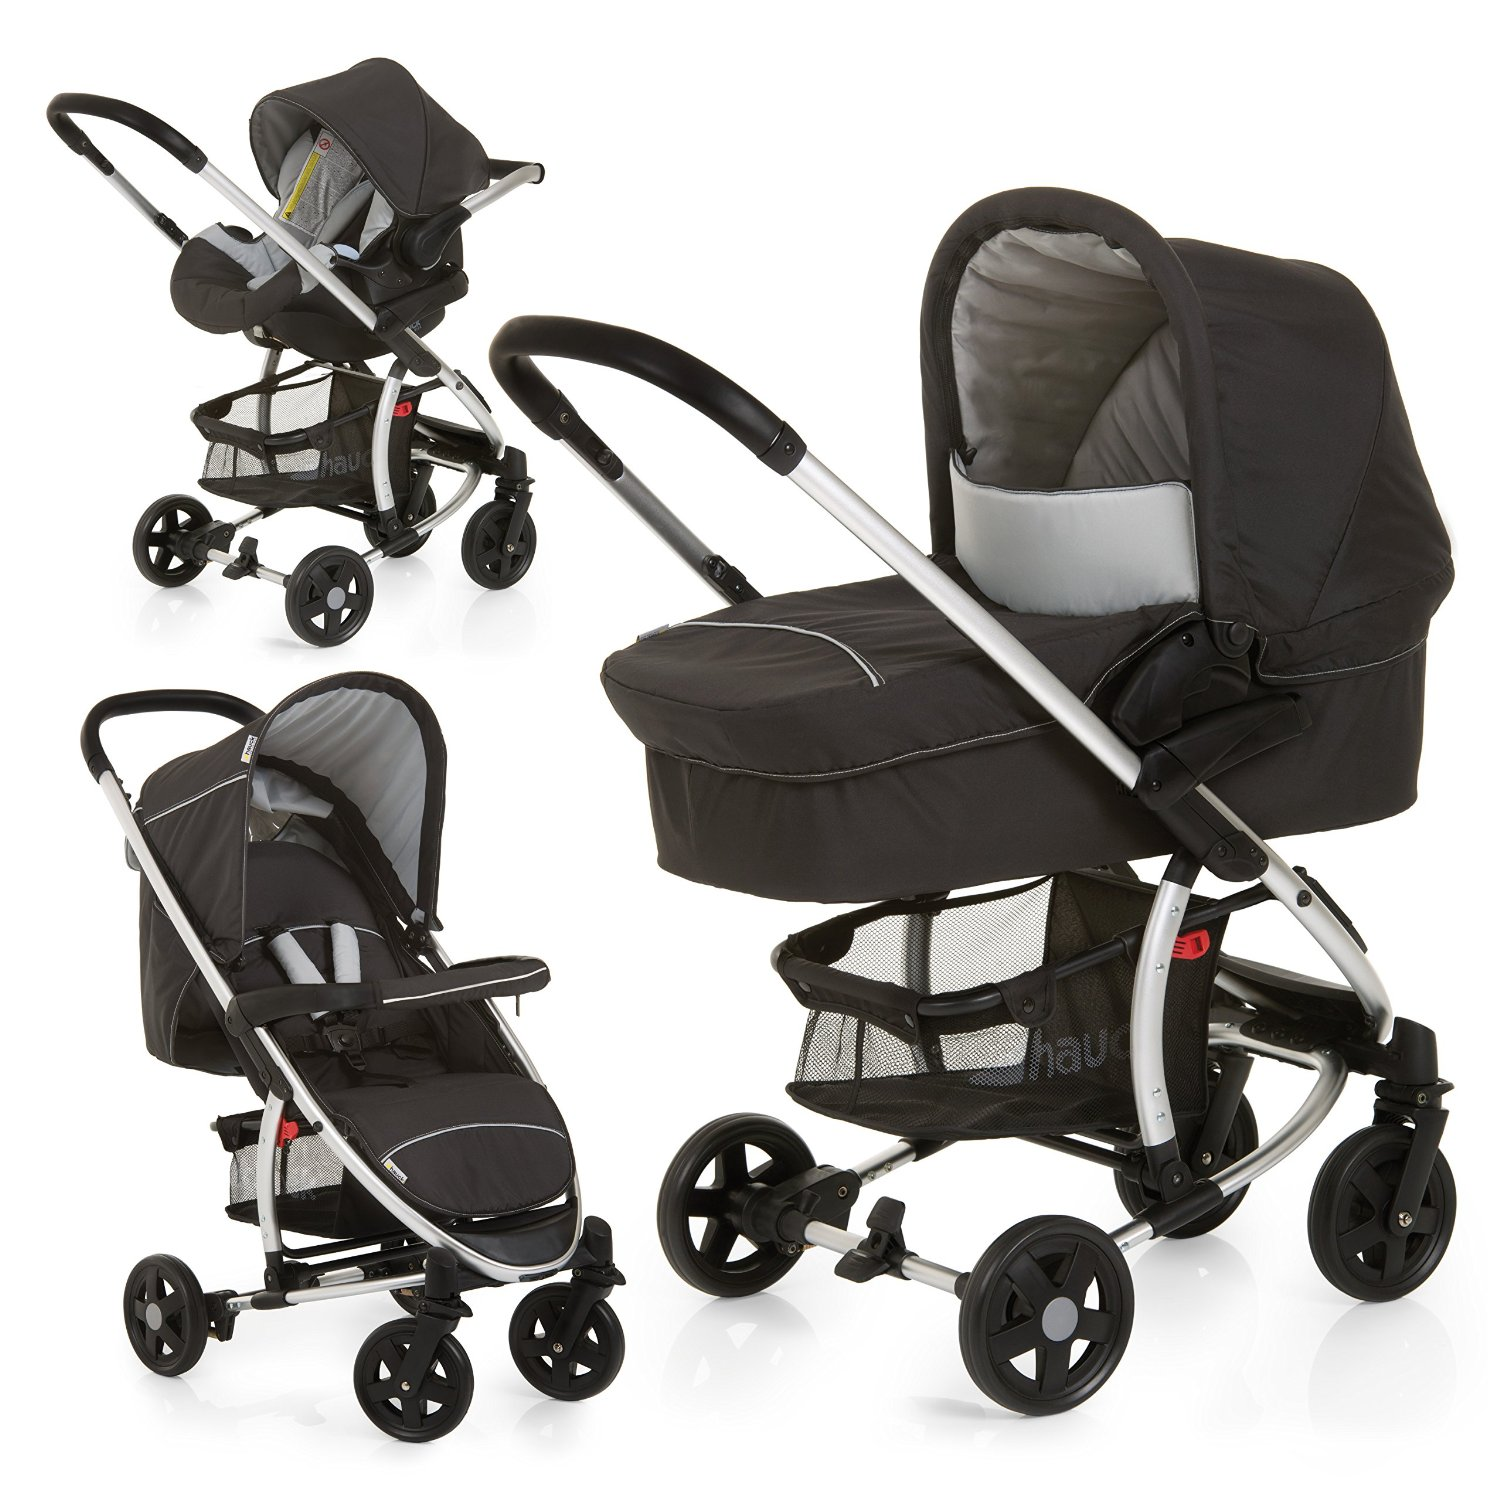 Stroller System With Car Seat And Carrier